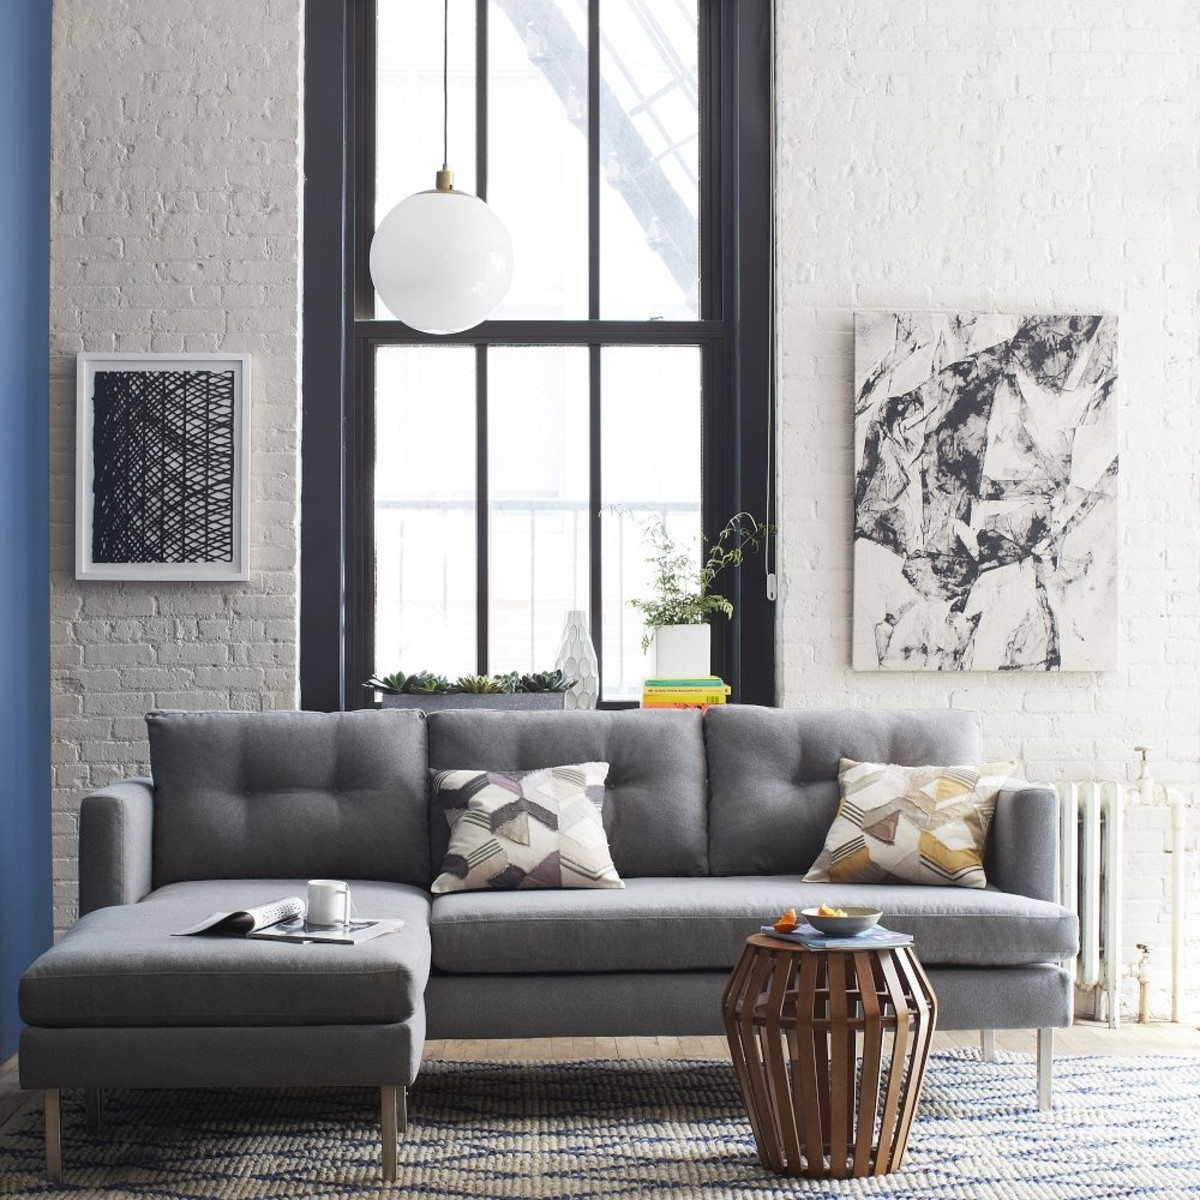 Jackson 2 Piece Chaise Sectional – Heather Grey Aud1809 | West Elm Within West Elm Sectional Sofas (View 6 of 10)